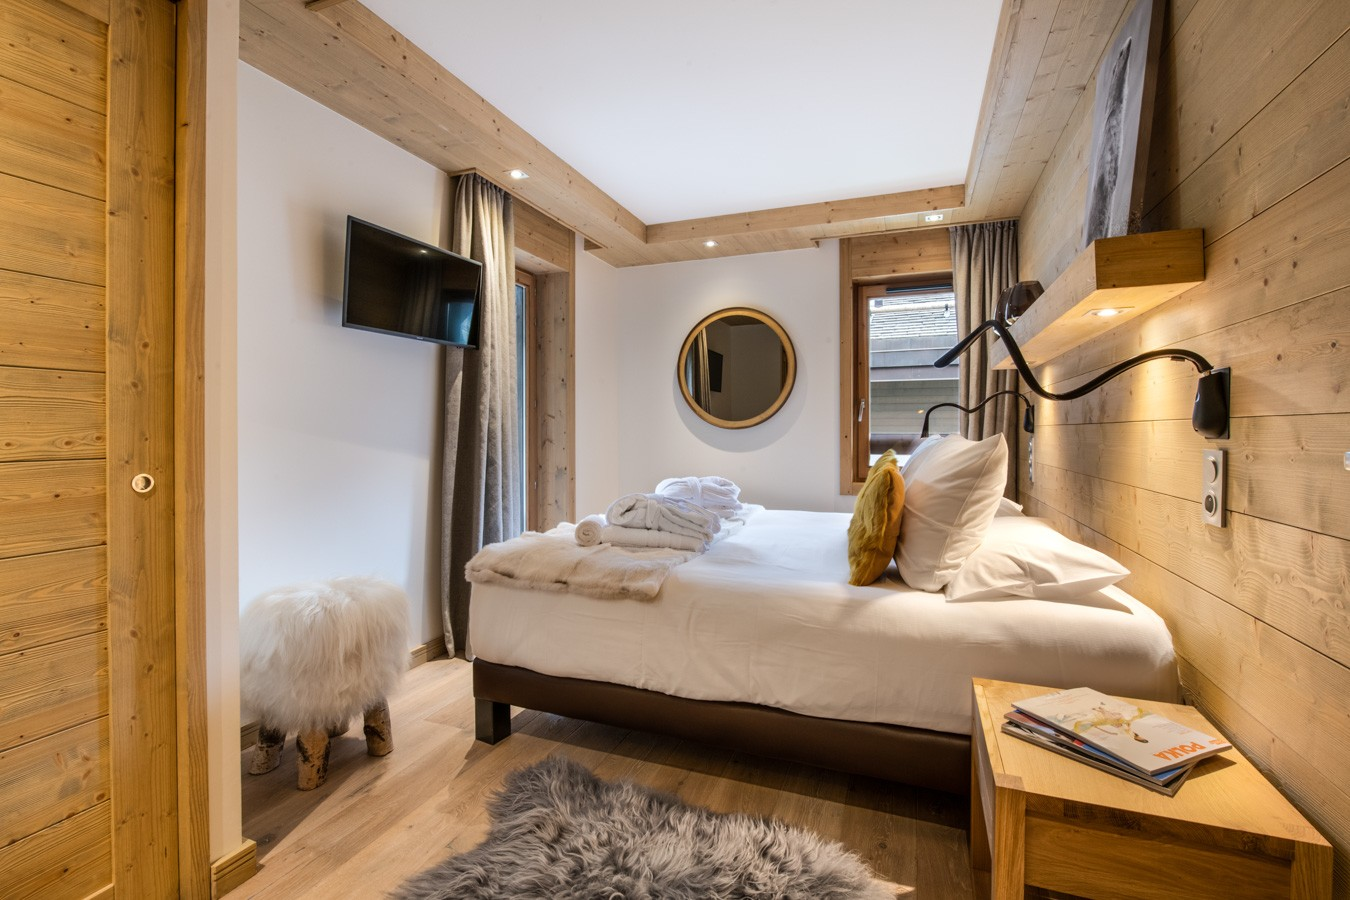 Courchevel 1650 Location Appartement Luxe Amethyste Chambre 3